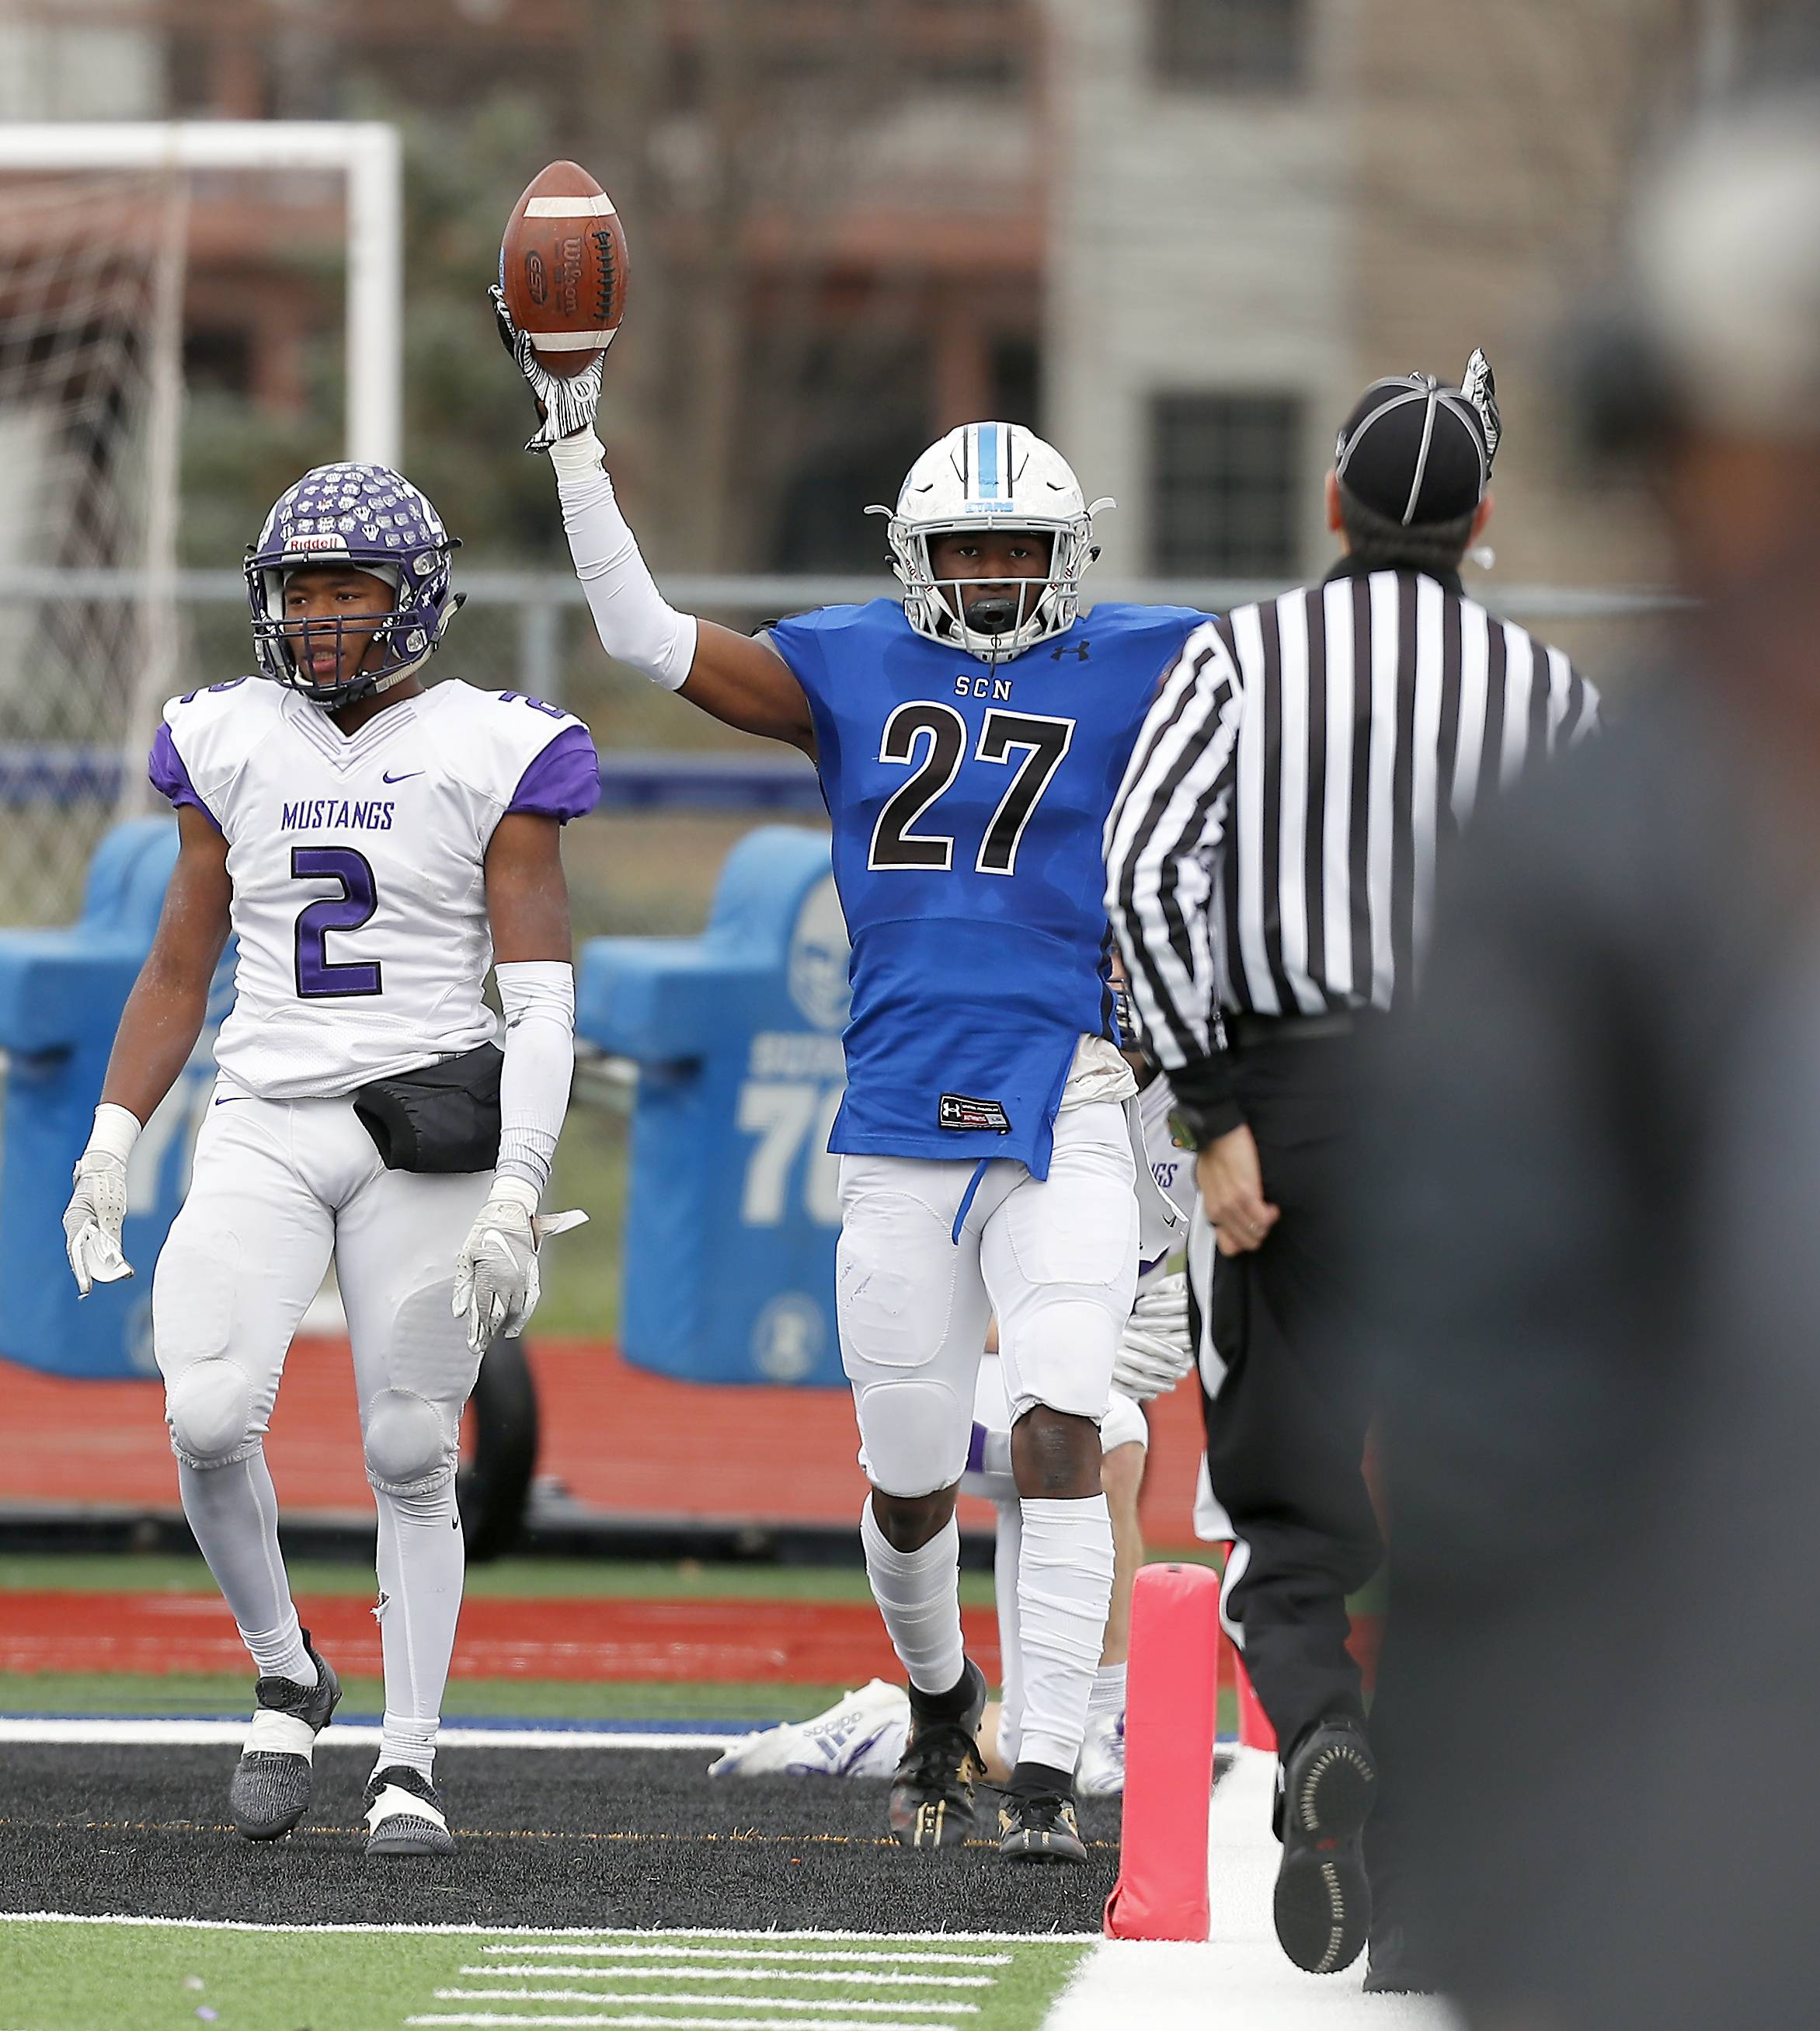 St. Charles North's Tyler Nubin (27) celebrates a touchdown Saturday during IHSA Class 7A playoff football in St. Charles.